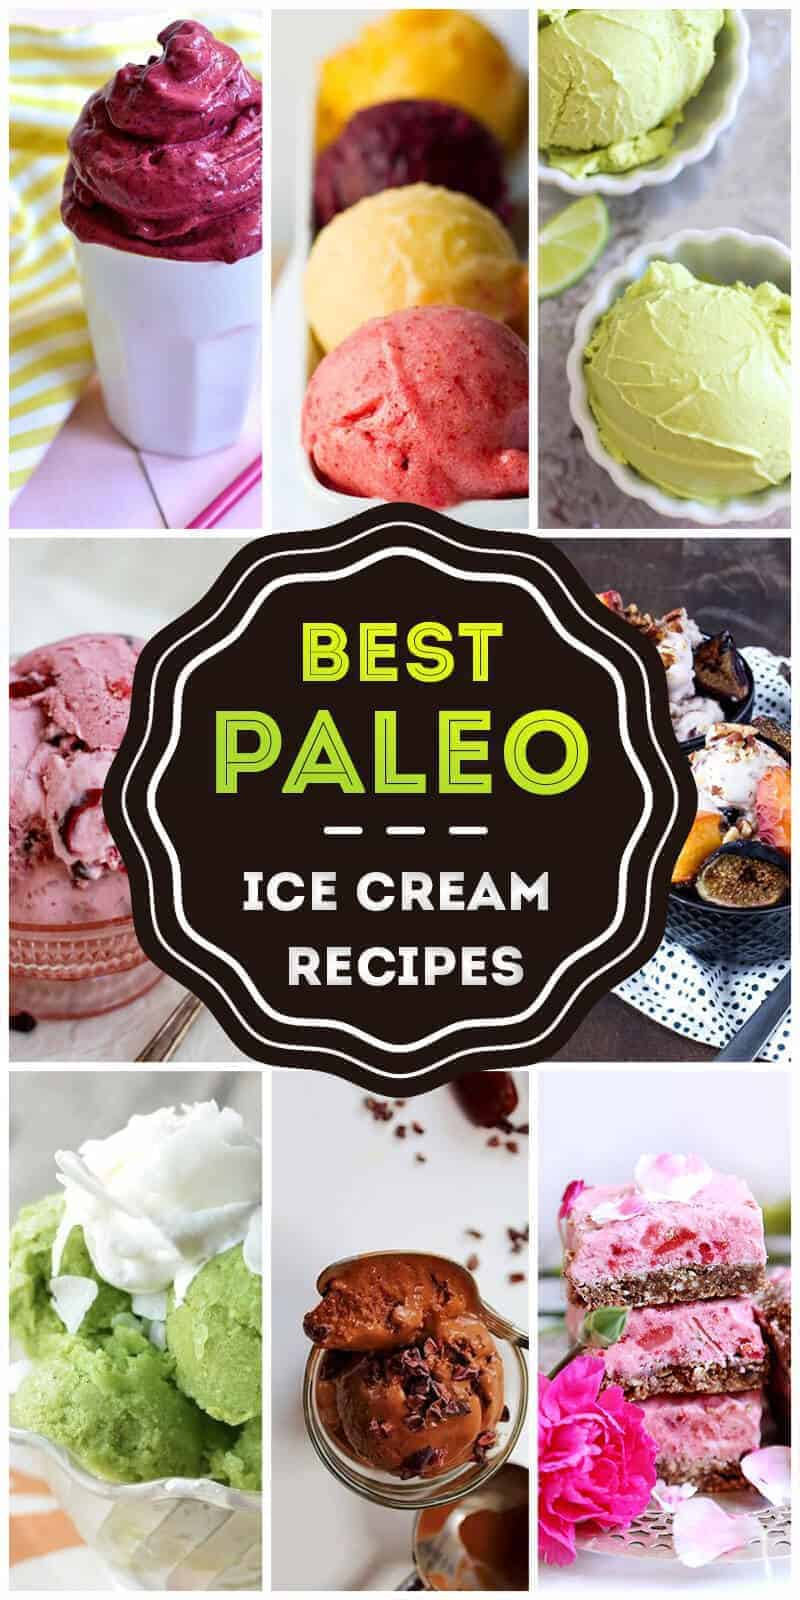 50 Amazing Paleo Inspired Ice Cream Recipes to Die For in 2018